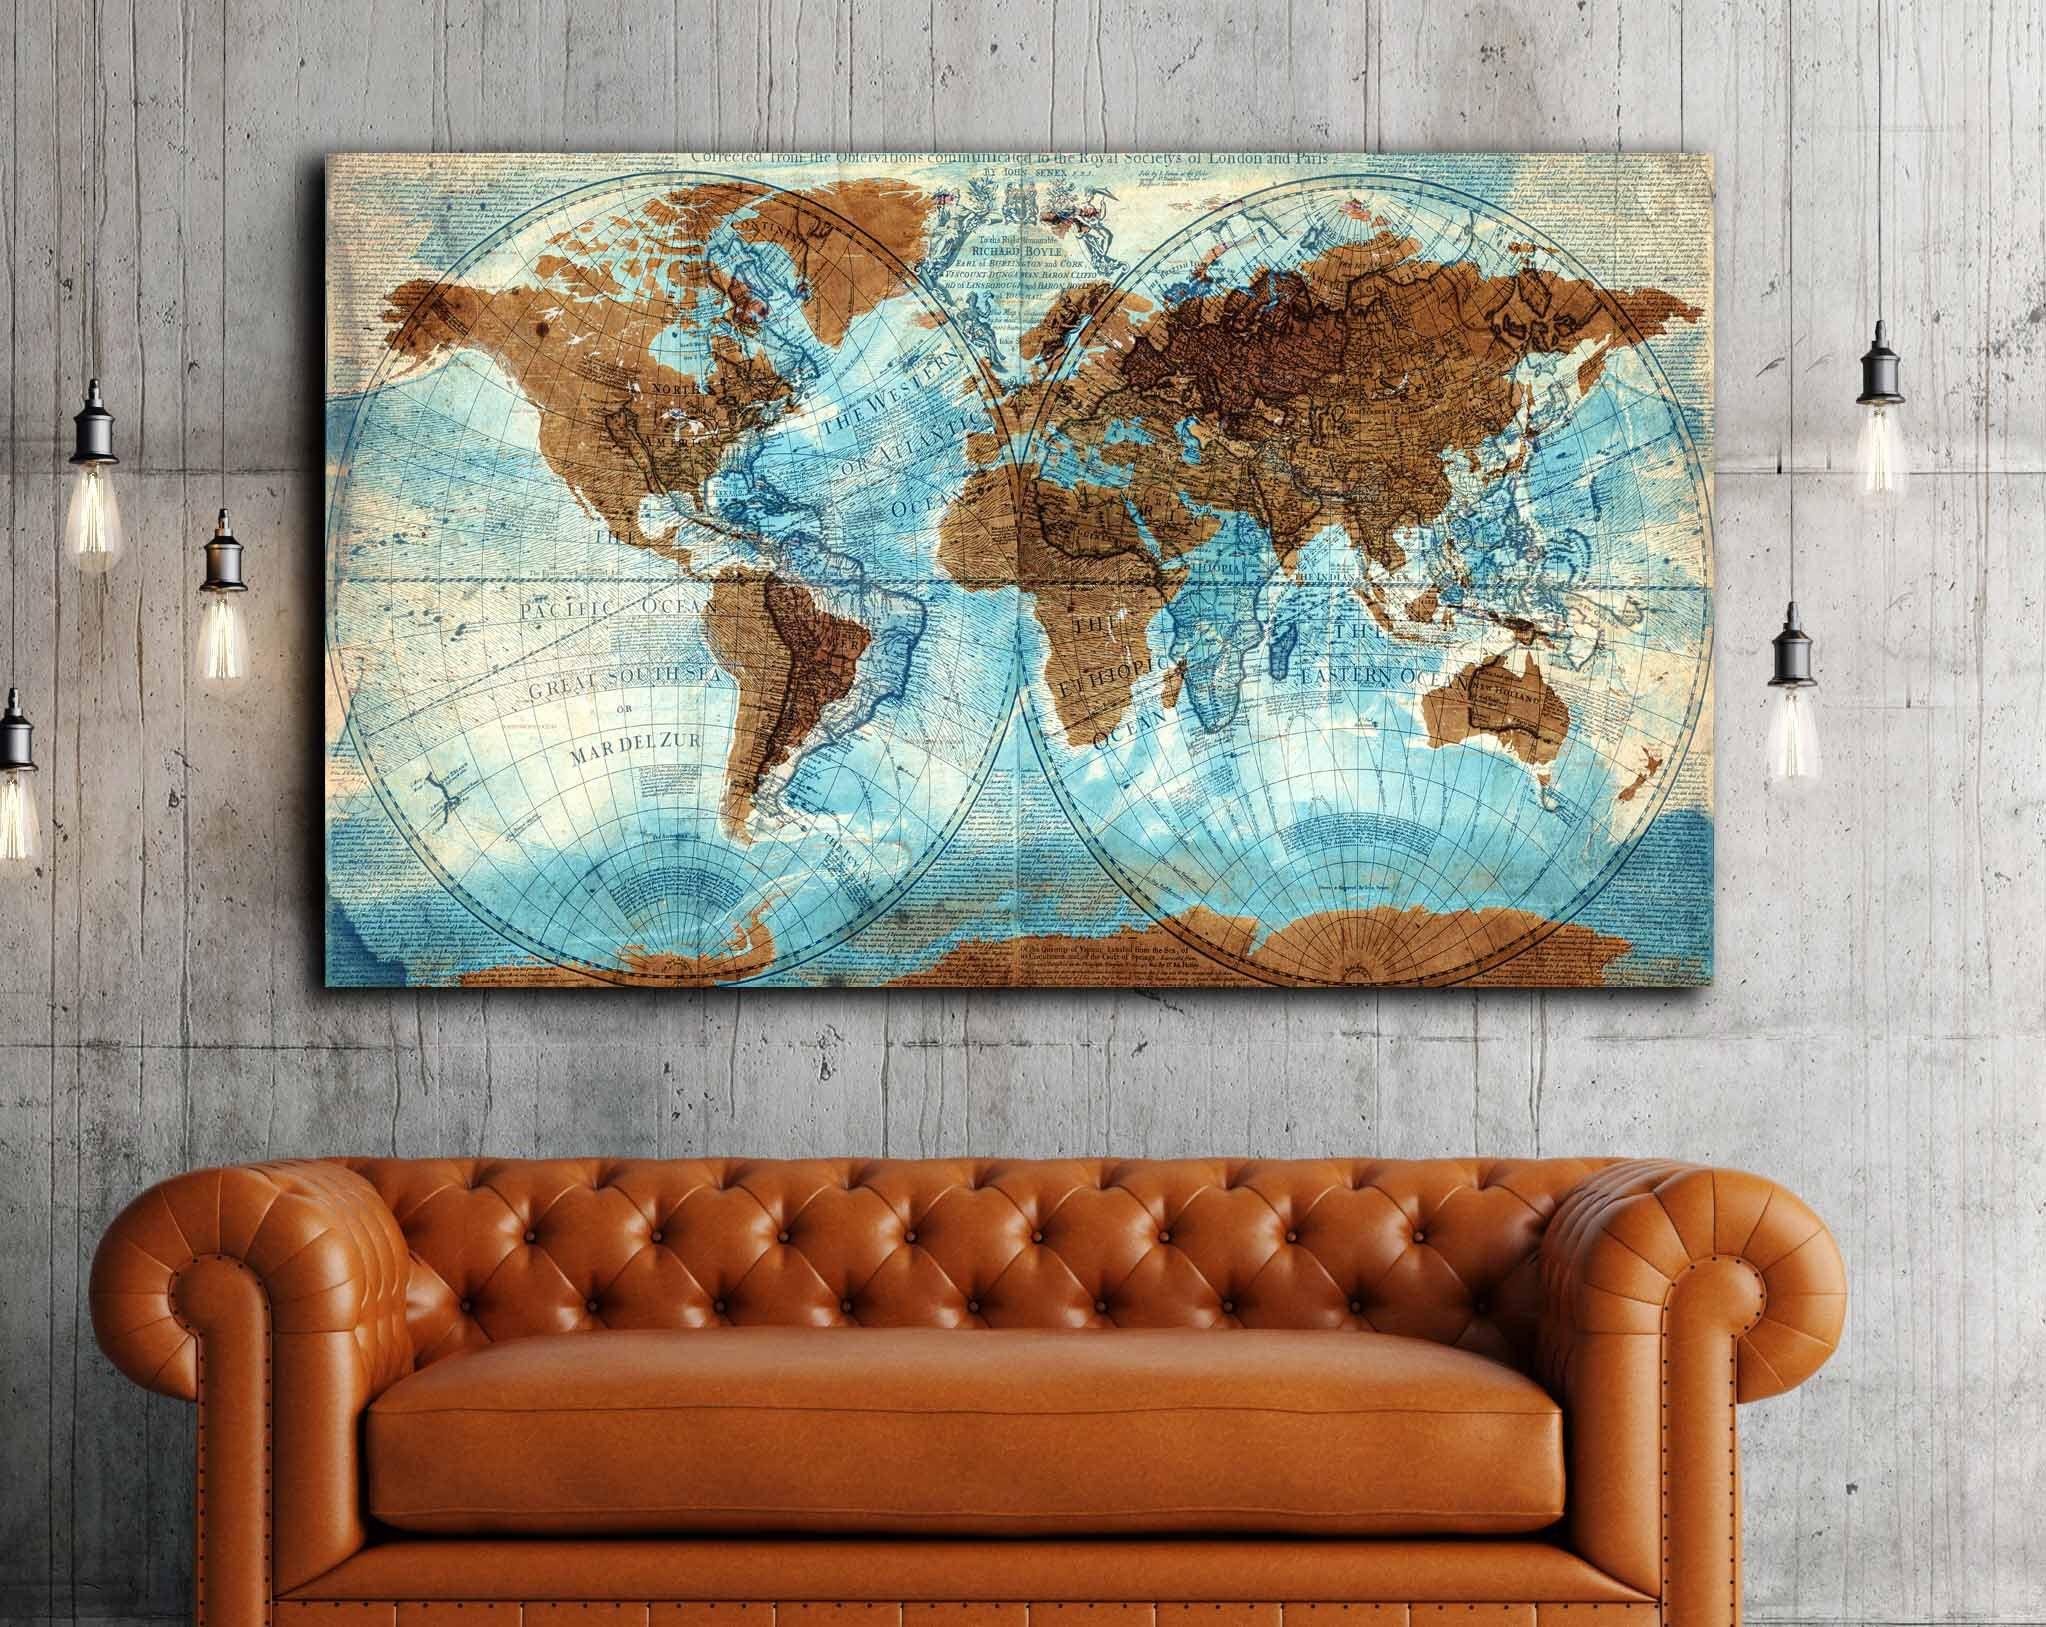 Vintage world map mixed with new world very detailed vintage world vintage world map mixed with new world very detailed vintage world map world map wall art world map canvas world map art world map print publicscrutiny Choice Image